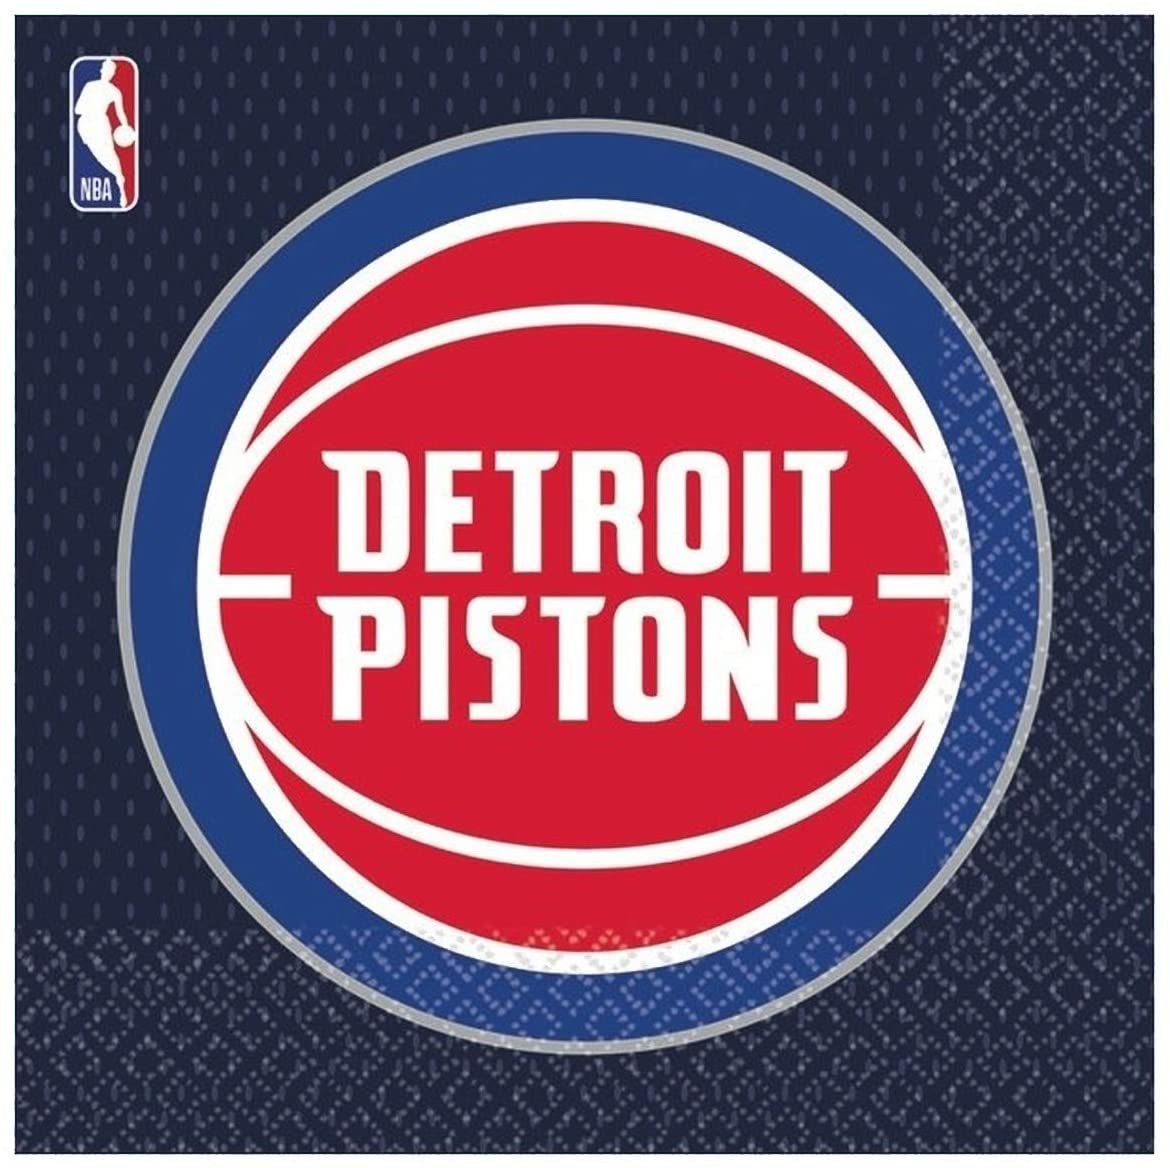 Amscan 5136141 Detroit Pistons NBA Collection Luncheon Napkins, 16ct